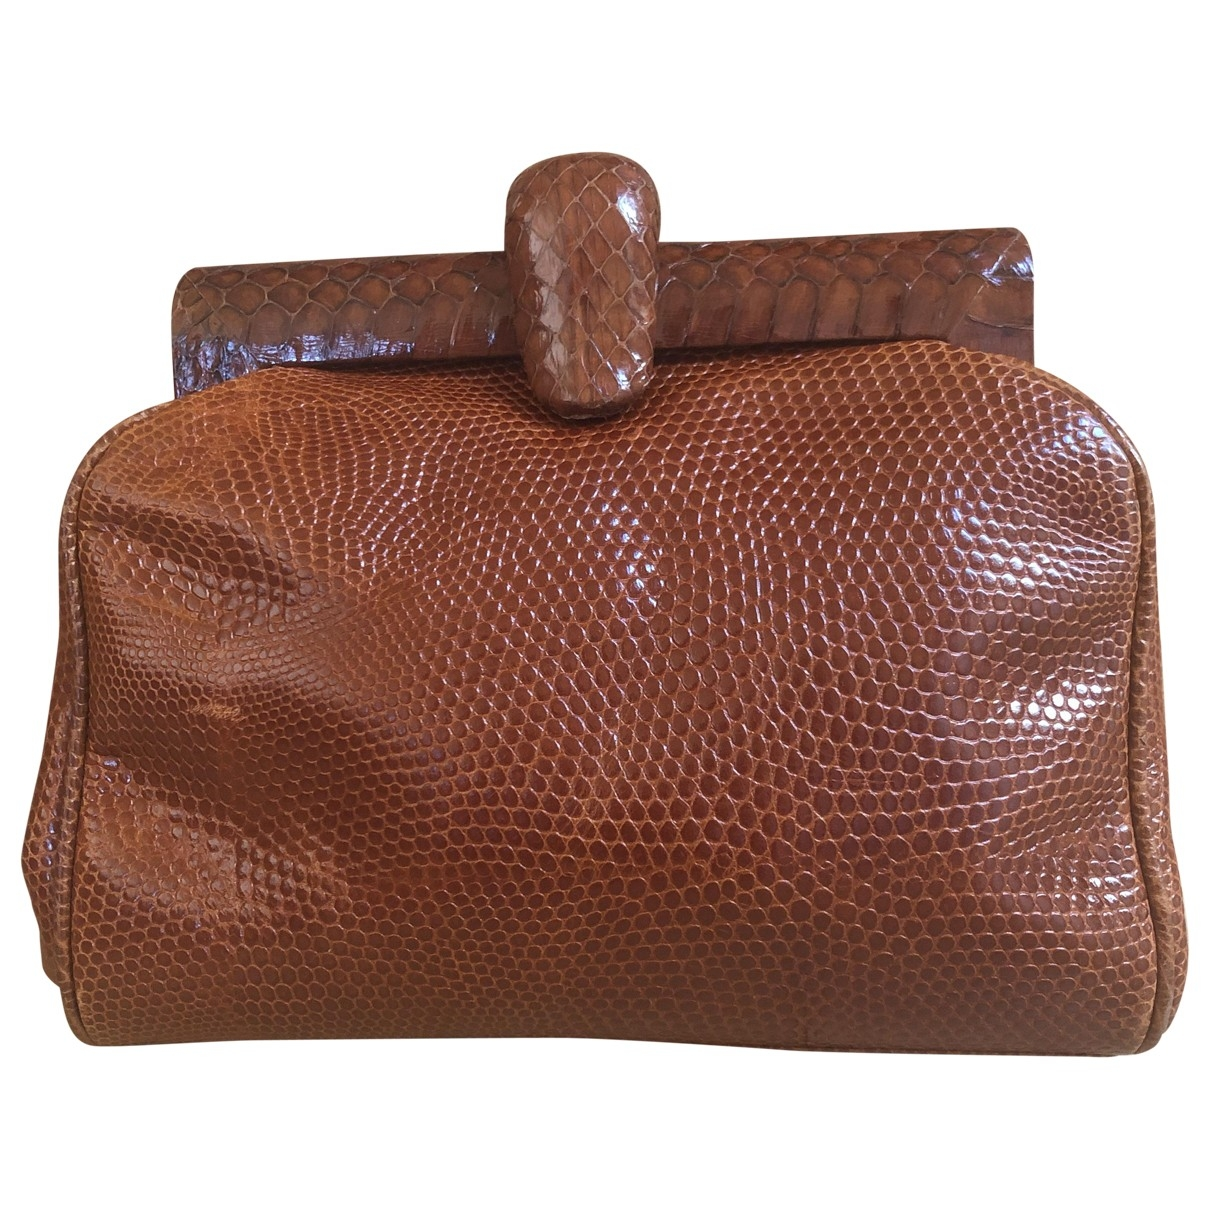 Prada \N Brown Lizard Clutch bag for Women \N